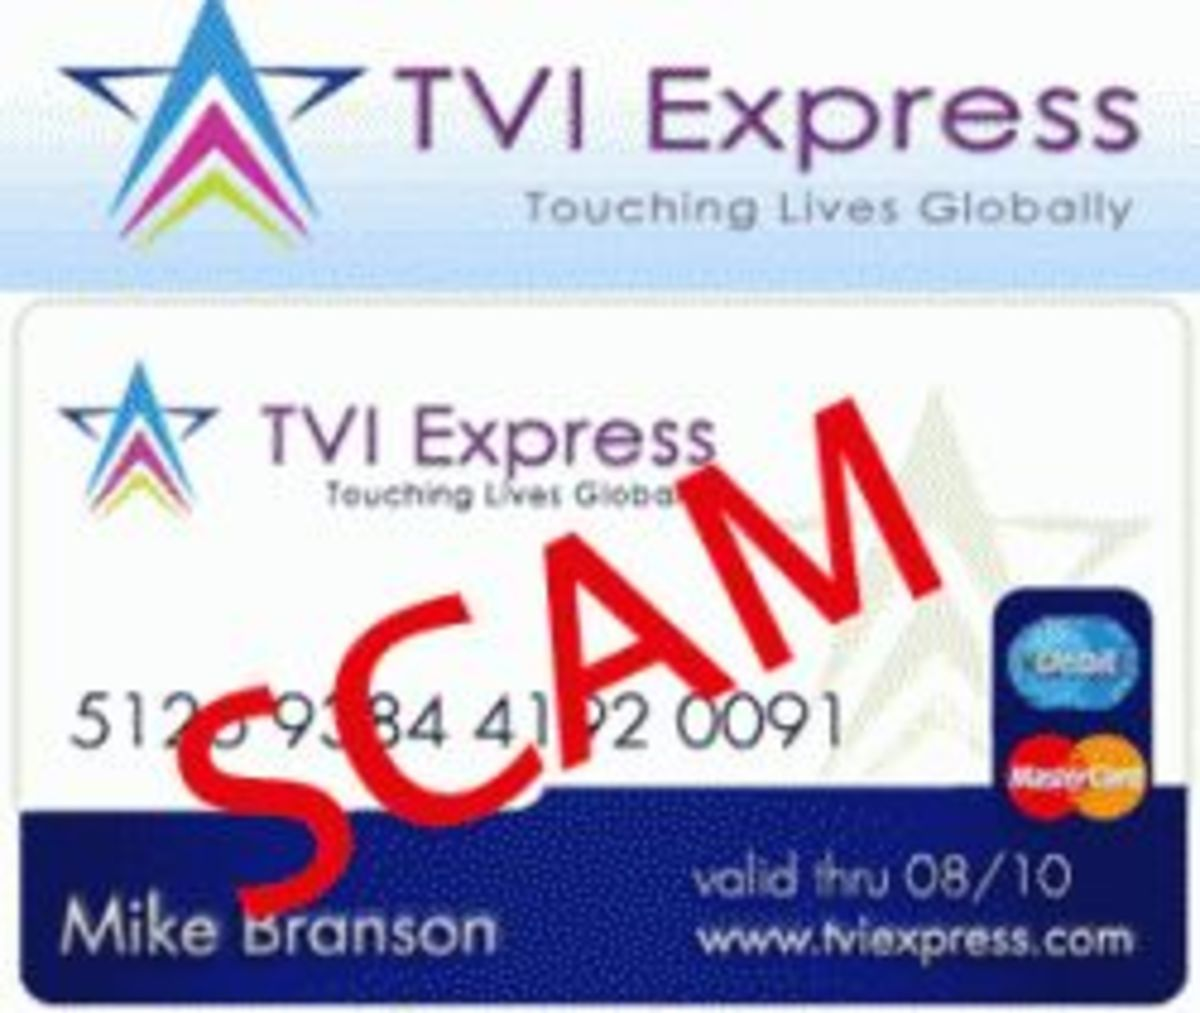 tvi-express-is-an-international-scam